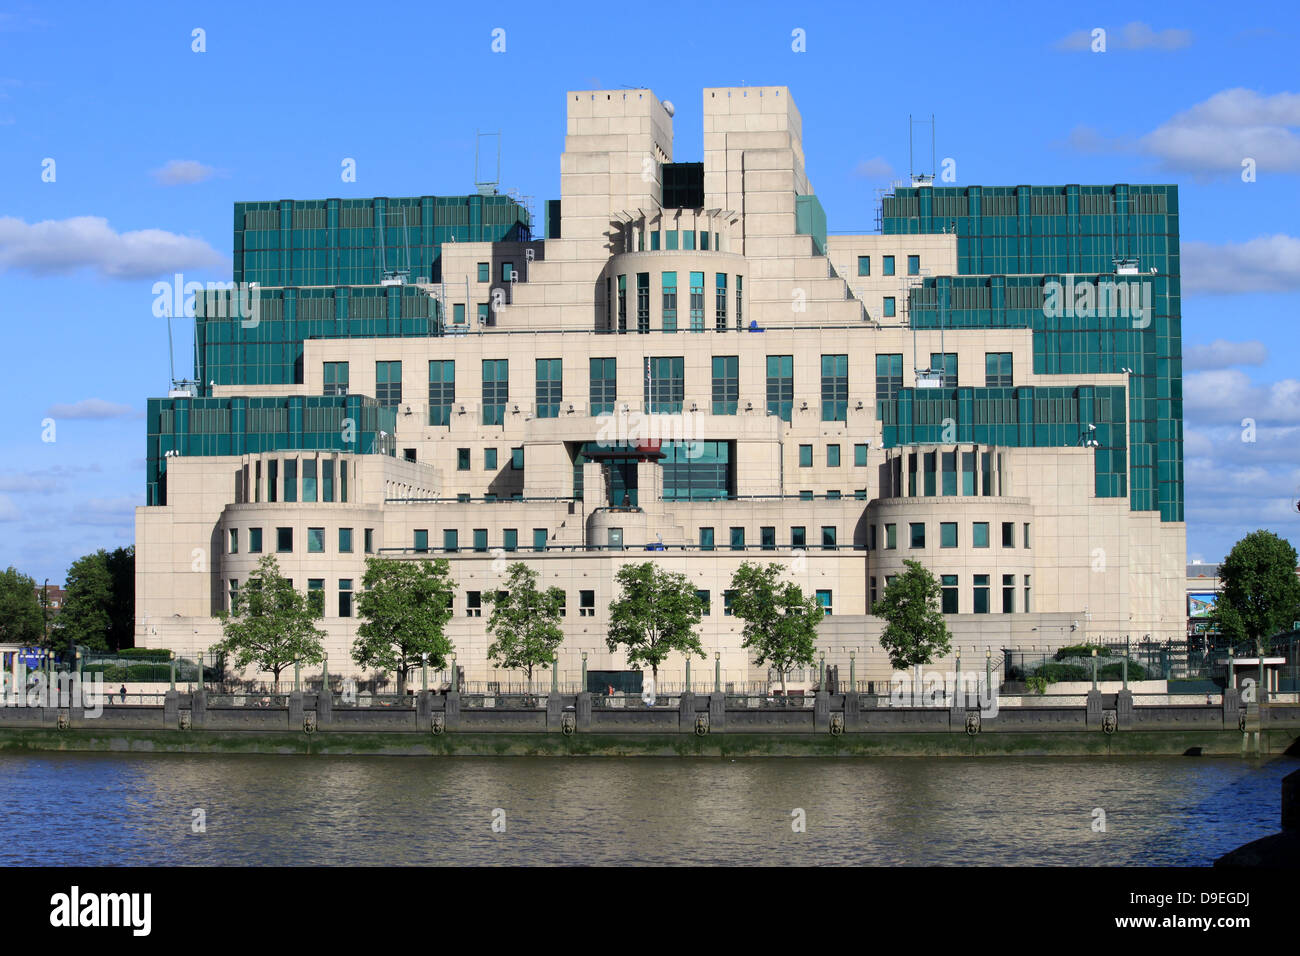 Secret intelligence services building, Vauxhall Cross, Vauxhall, London on south bank of River Thames Stock Photo